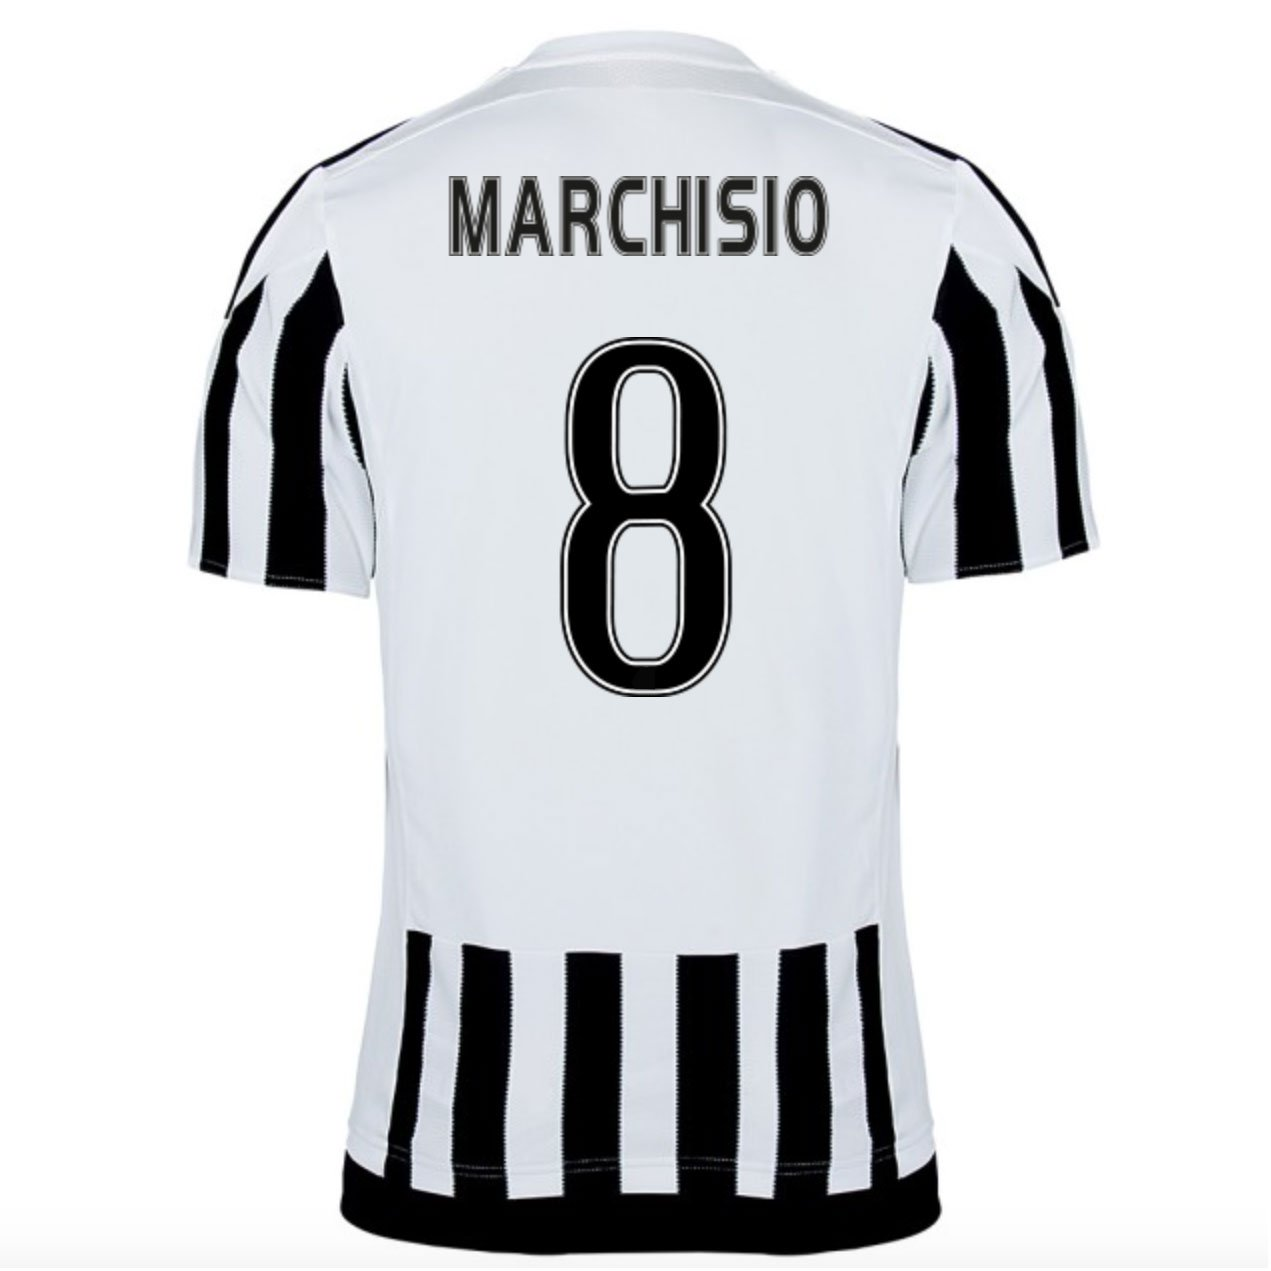 2015-16 Juventus Home Shirt (Marchisio 8) Kids B077VLZB5DWhite XL Boys 32-34\